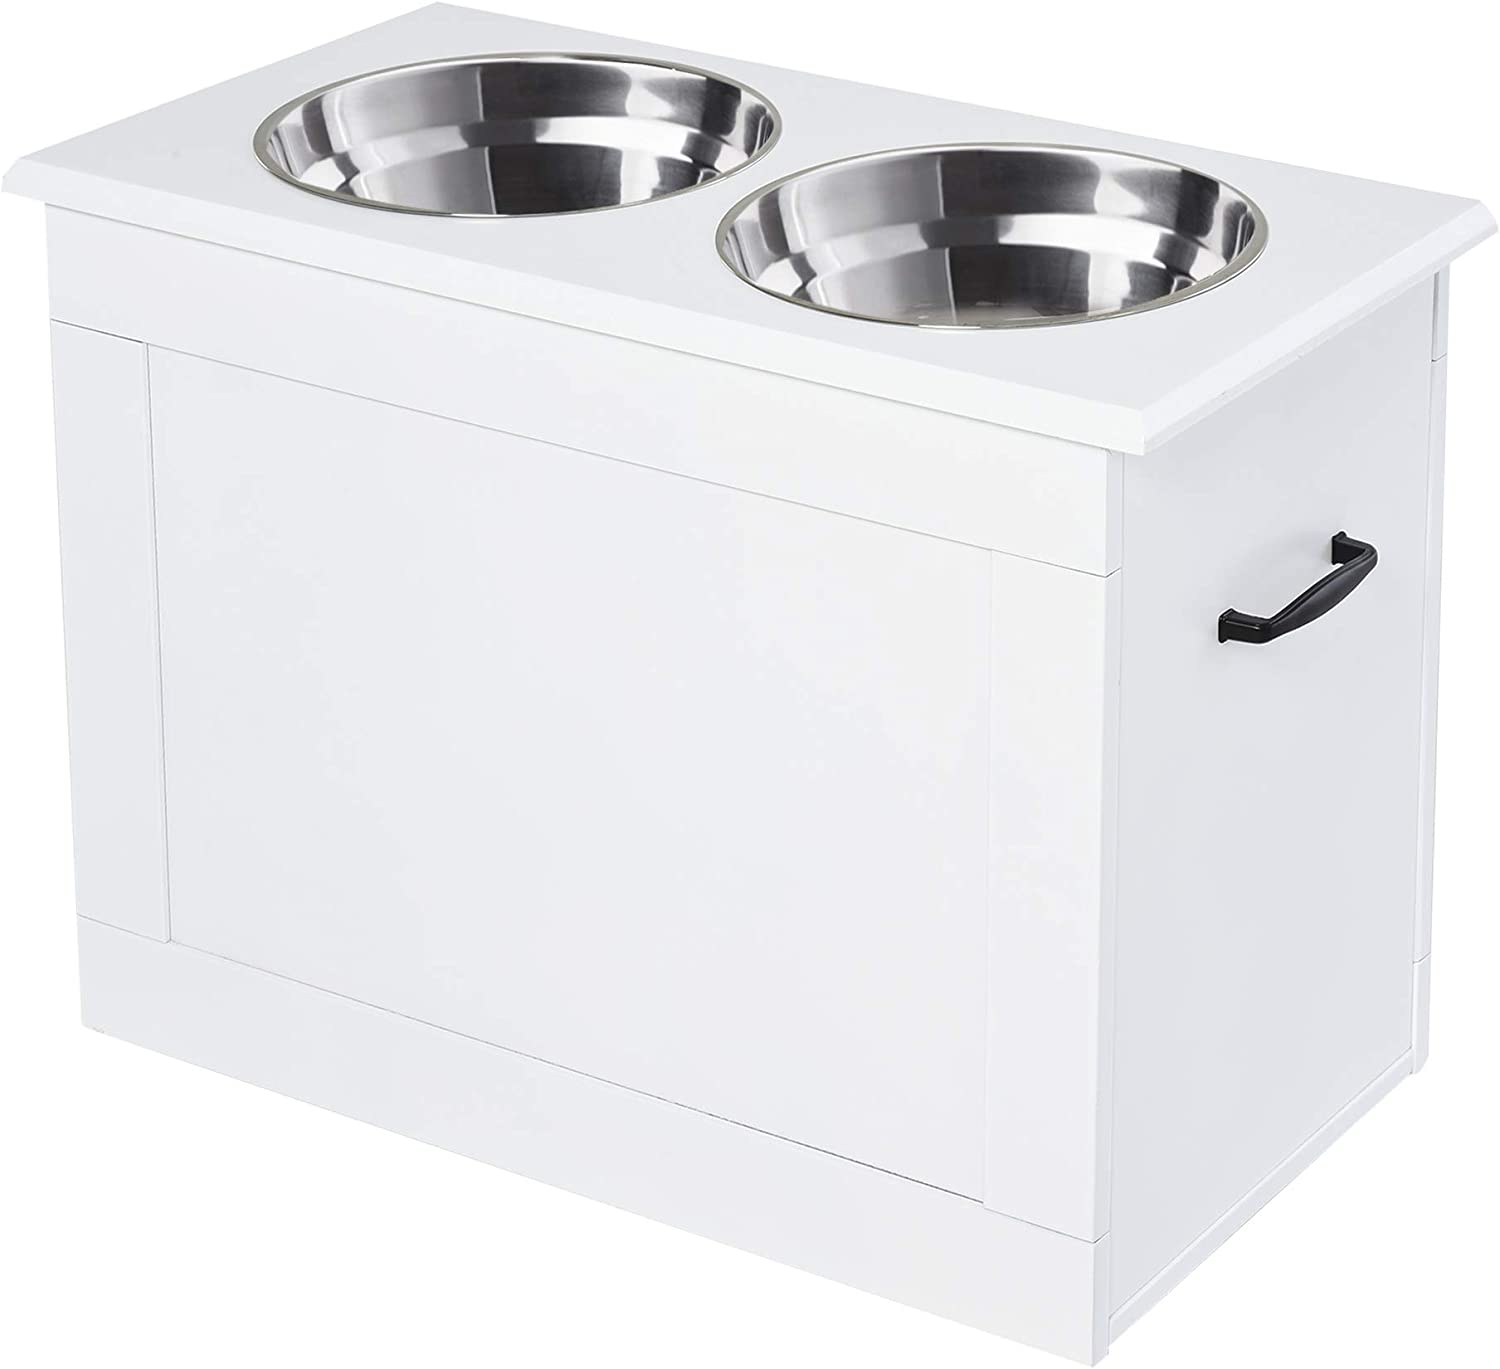 PawHut Raised Pet Feeding Storage Station with 2 Stainless Steel Bowls Base for Large Dogs and Other Large Pets